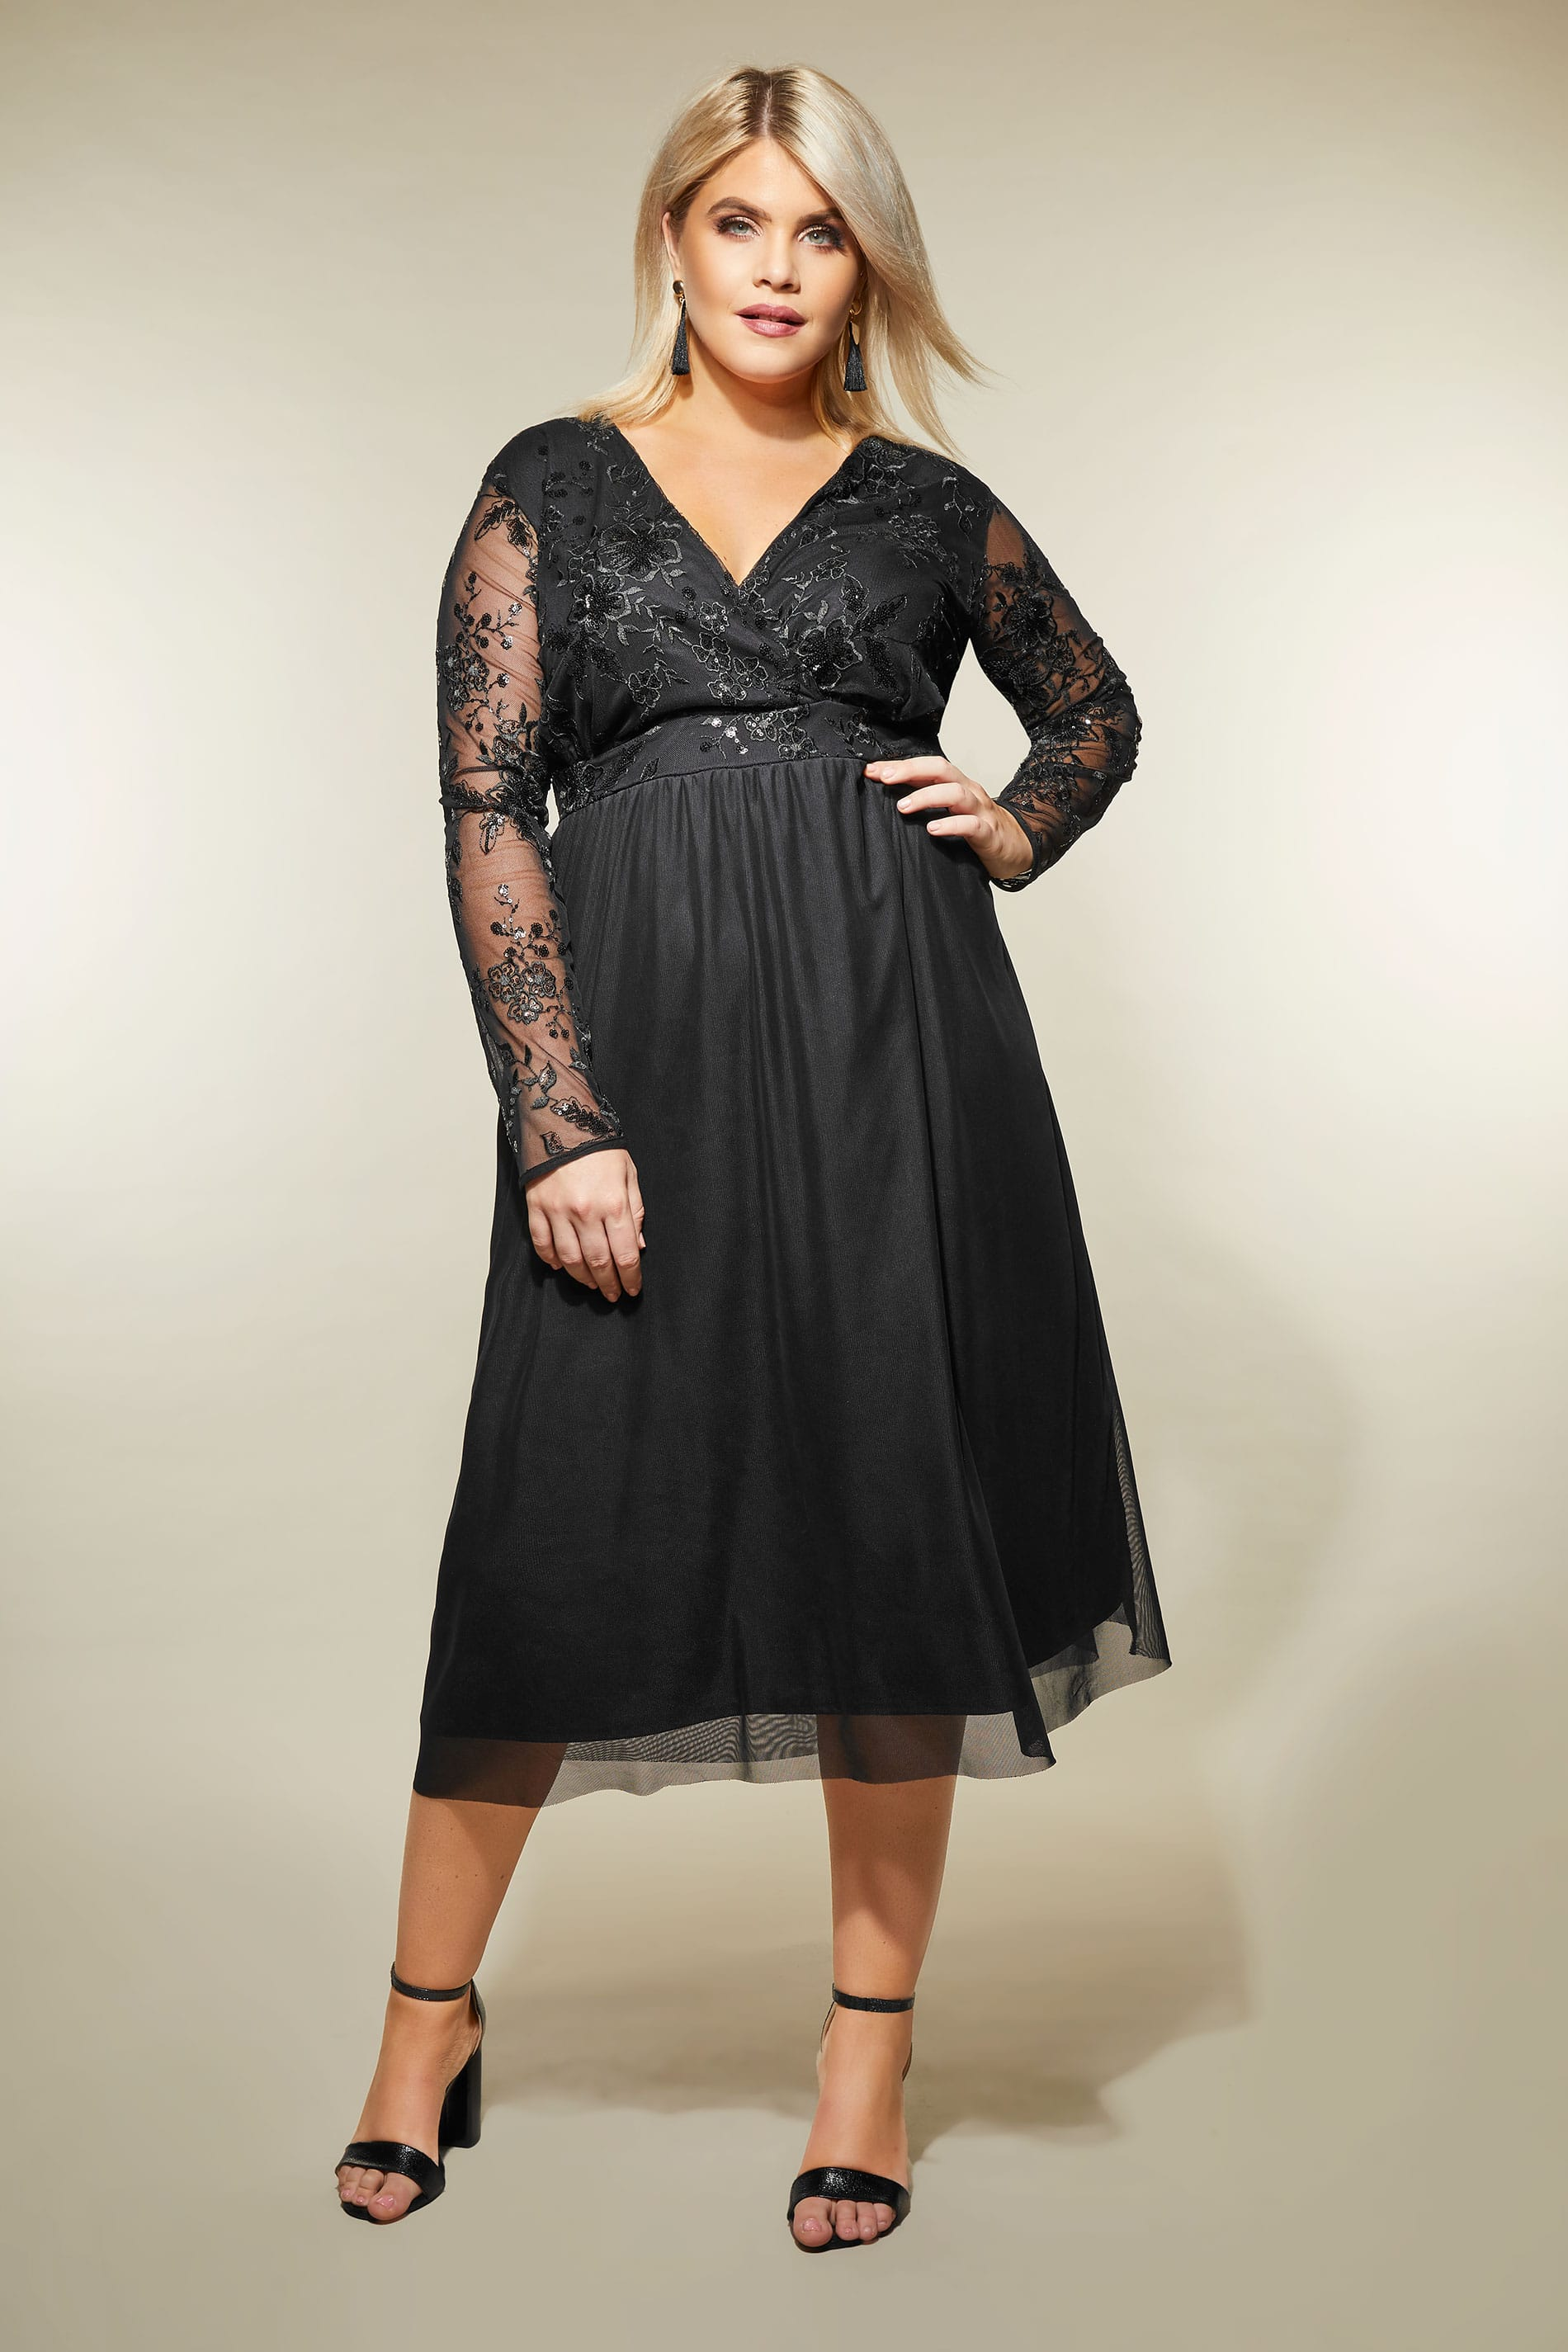 Yours London Black Sequin Embellished Lace Dress